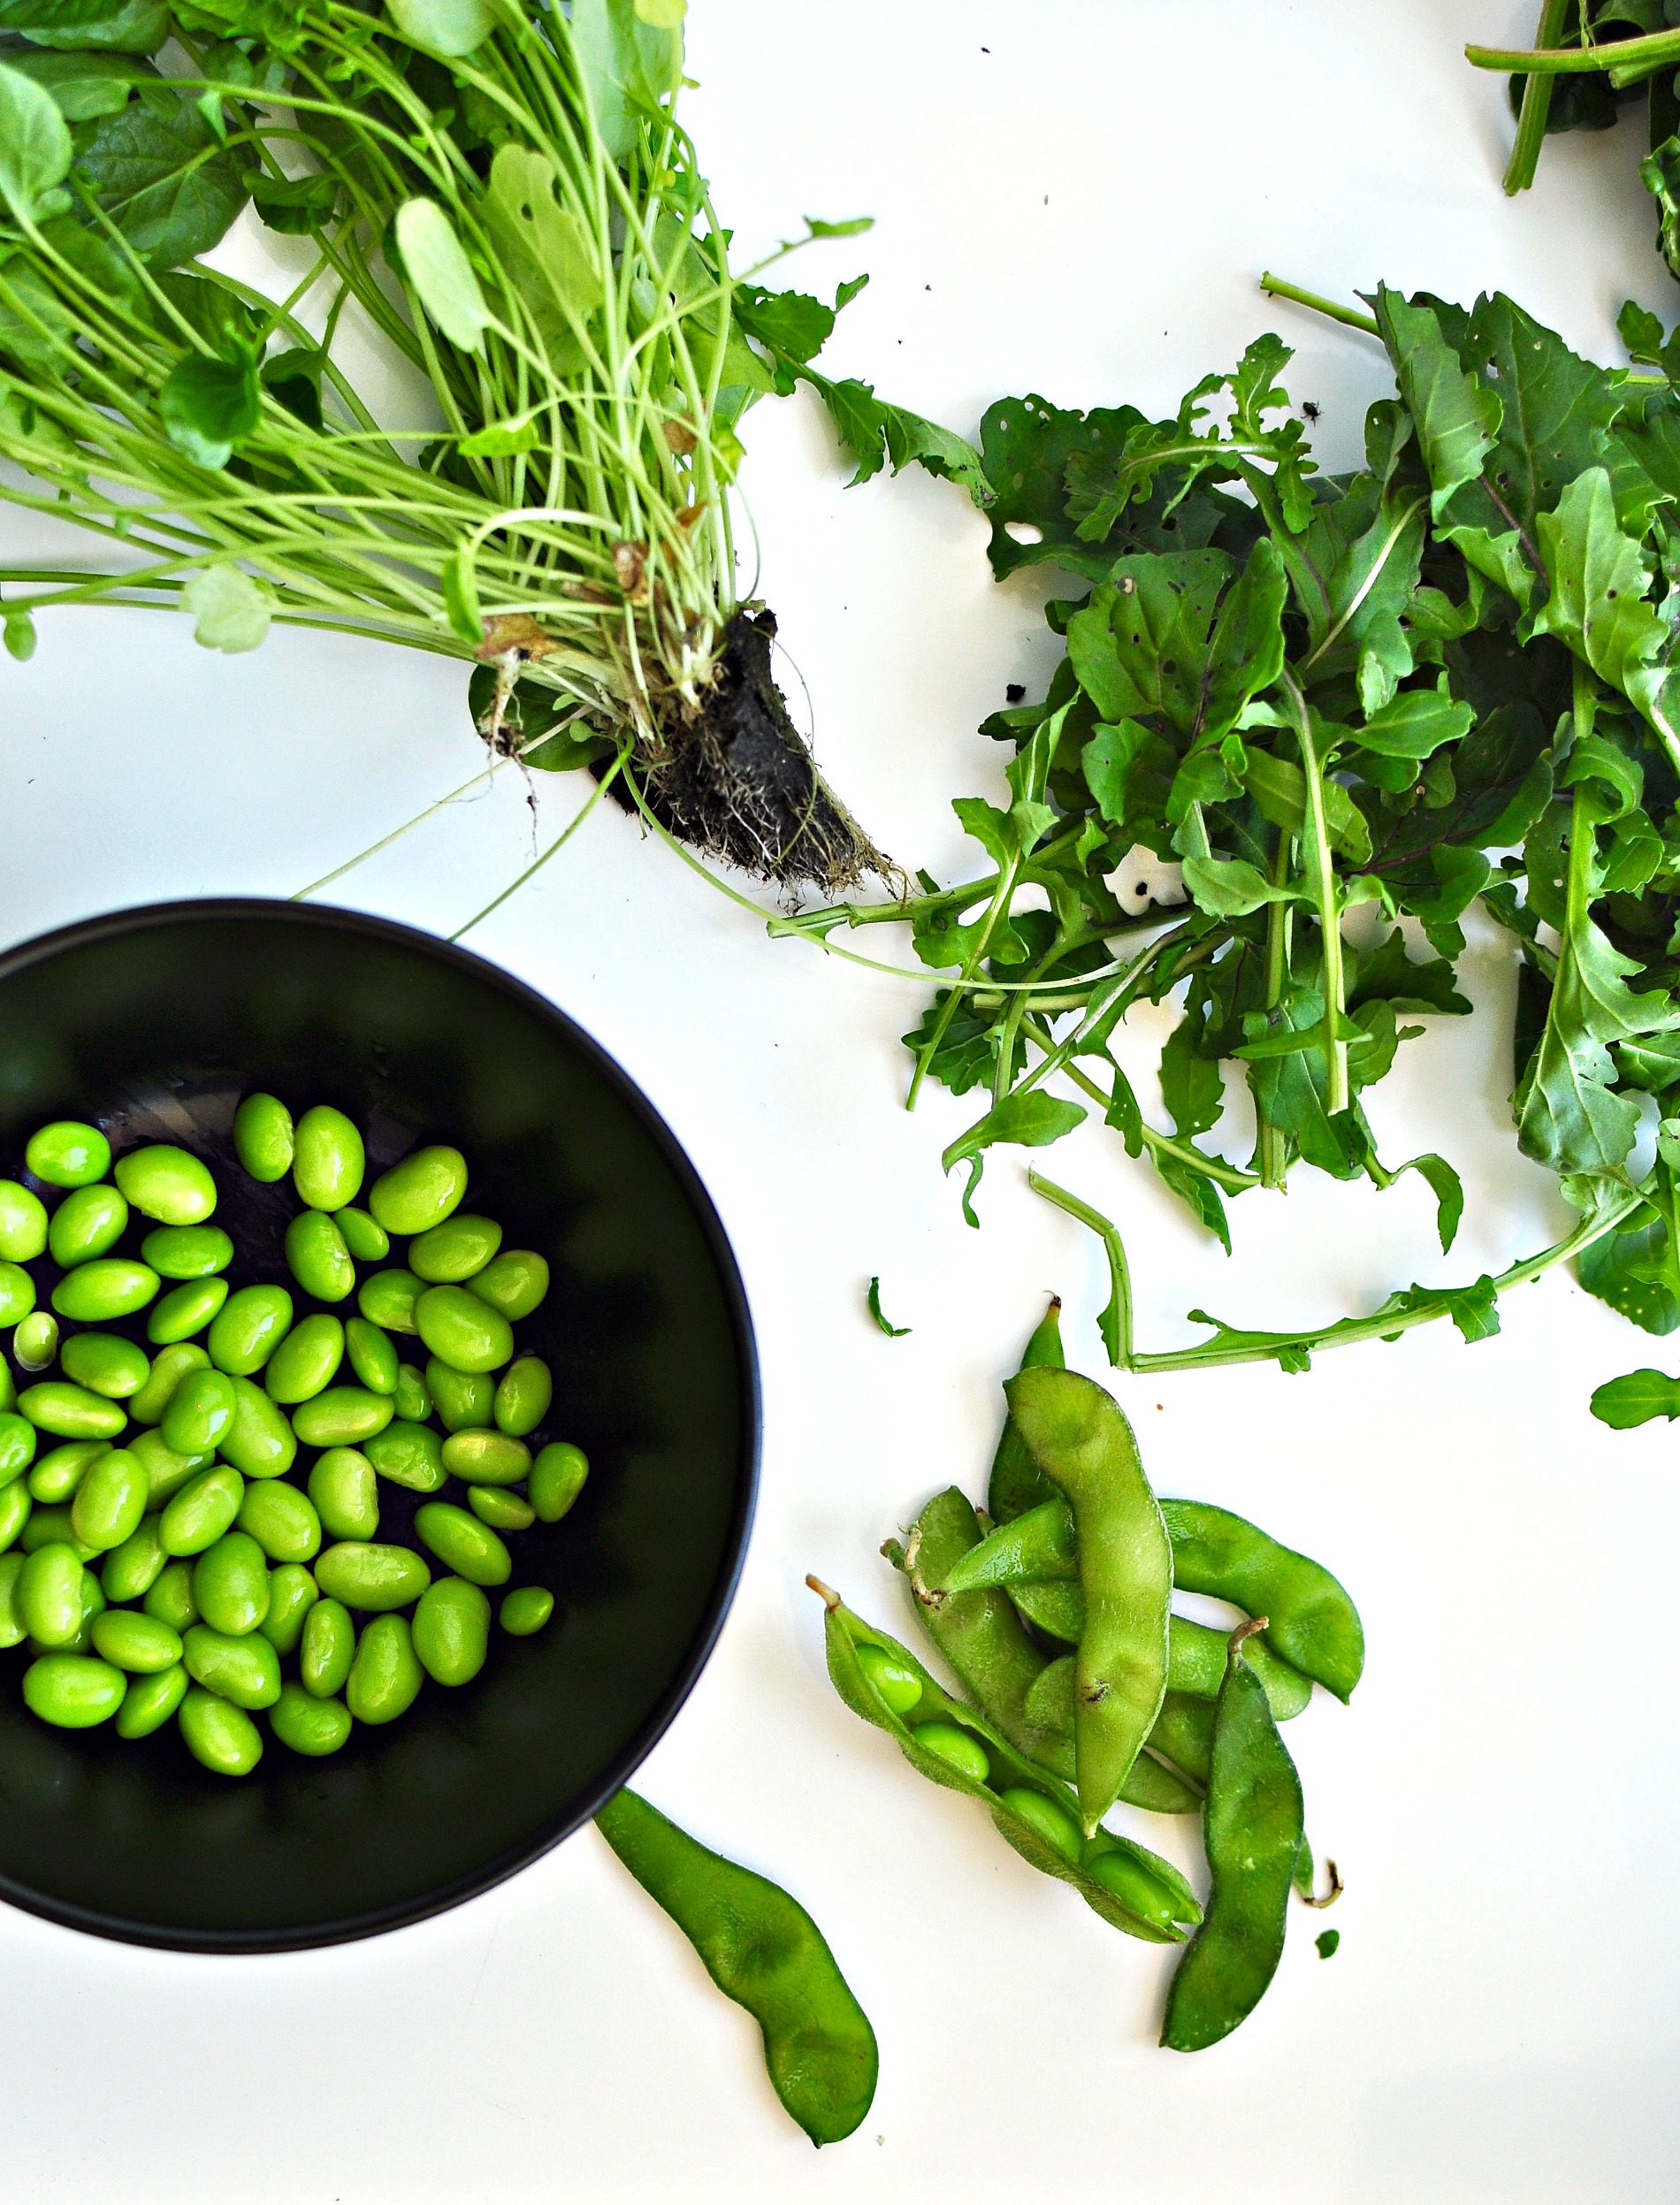 greens and edamame